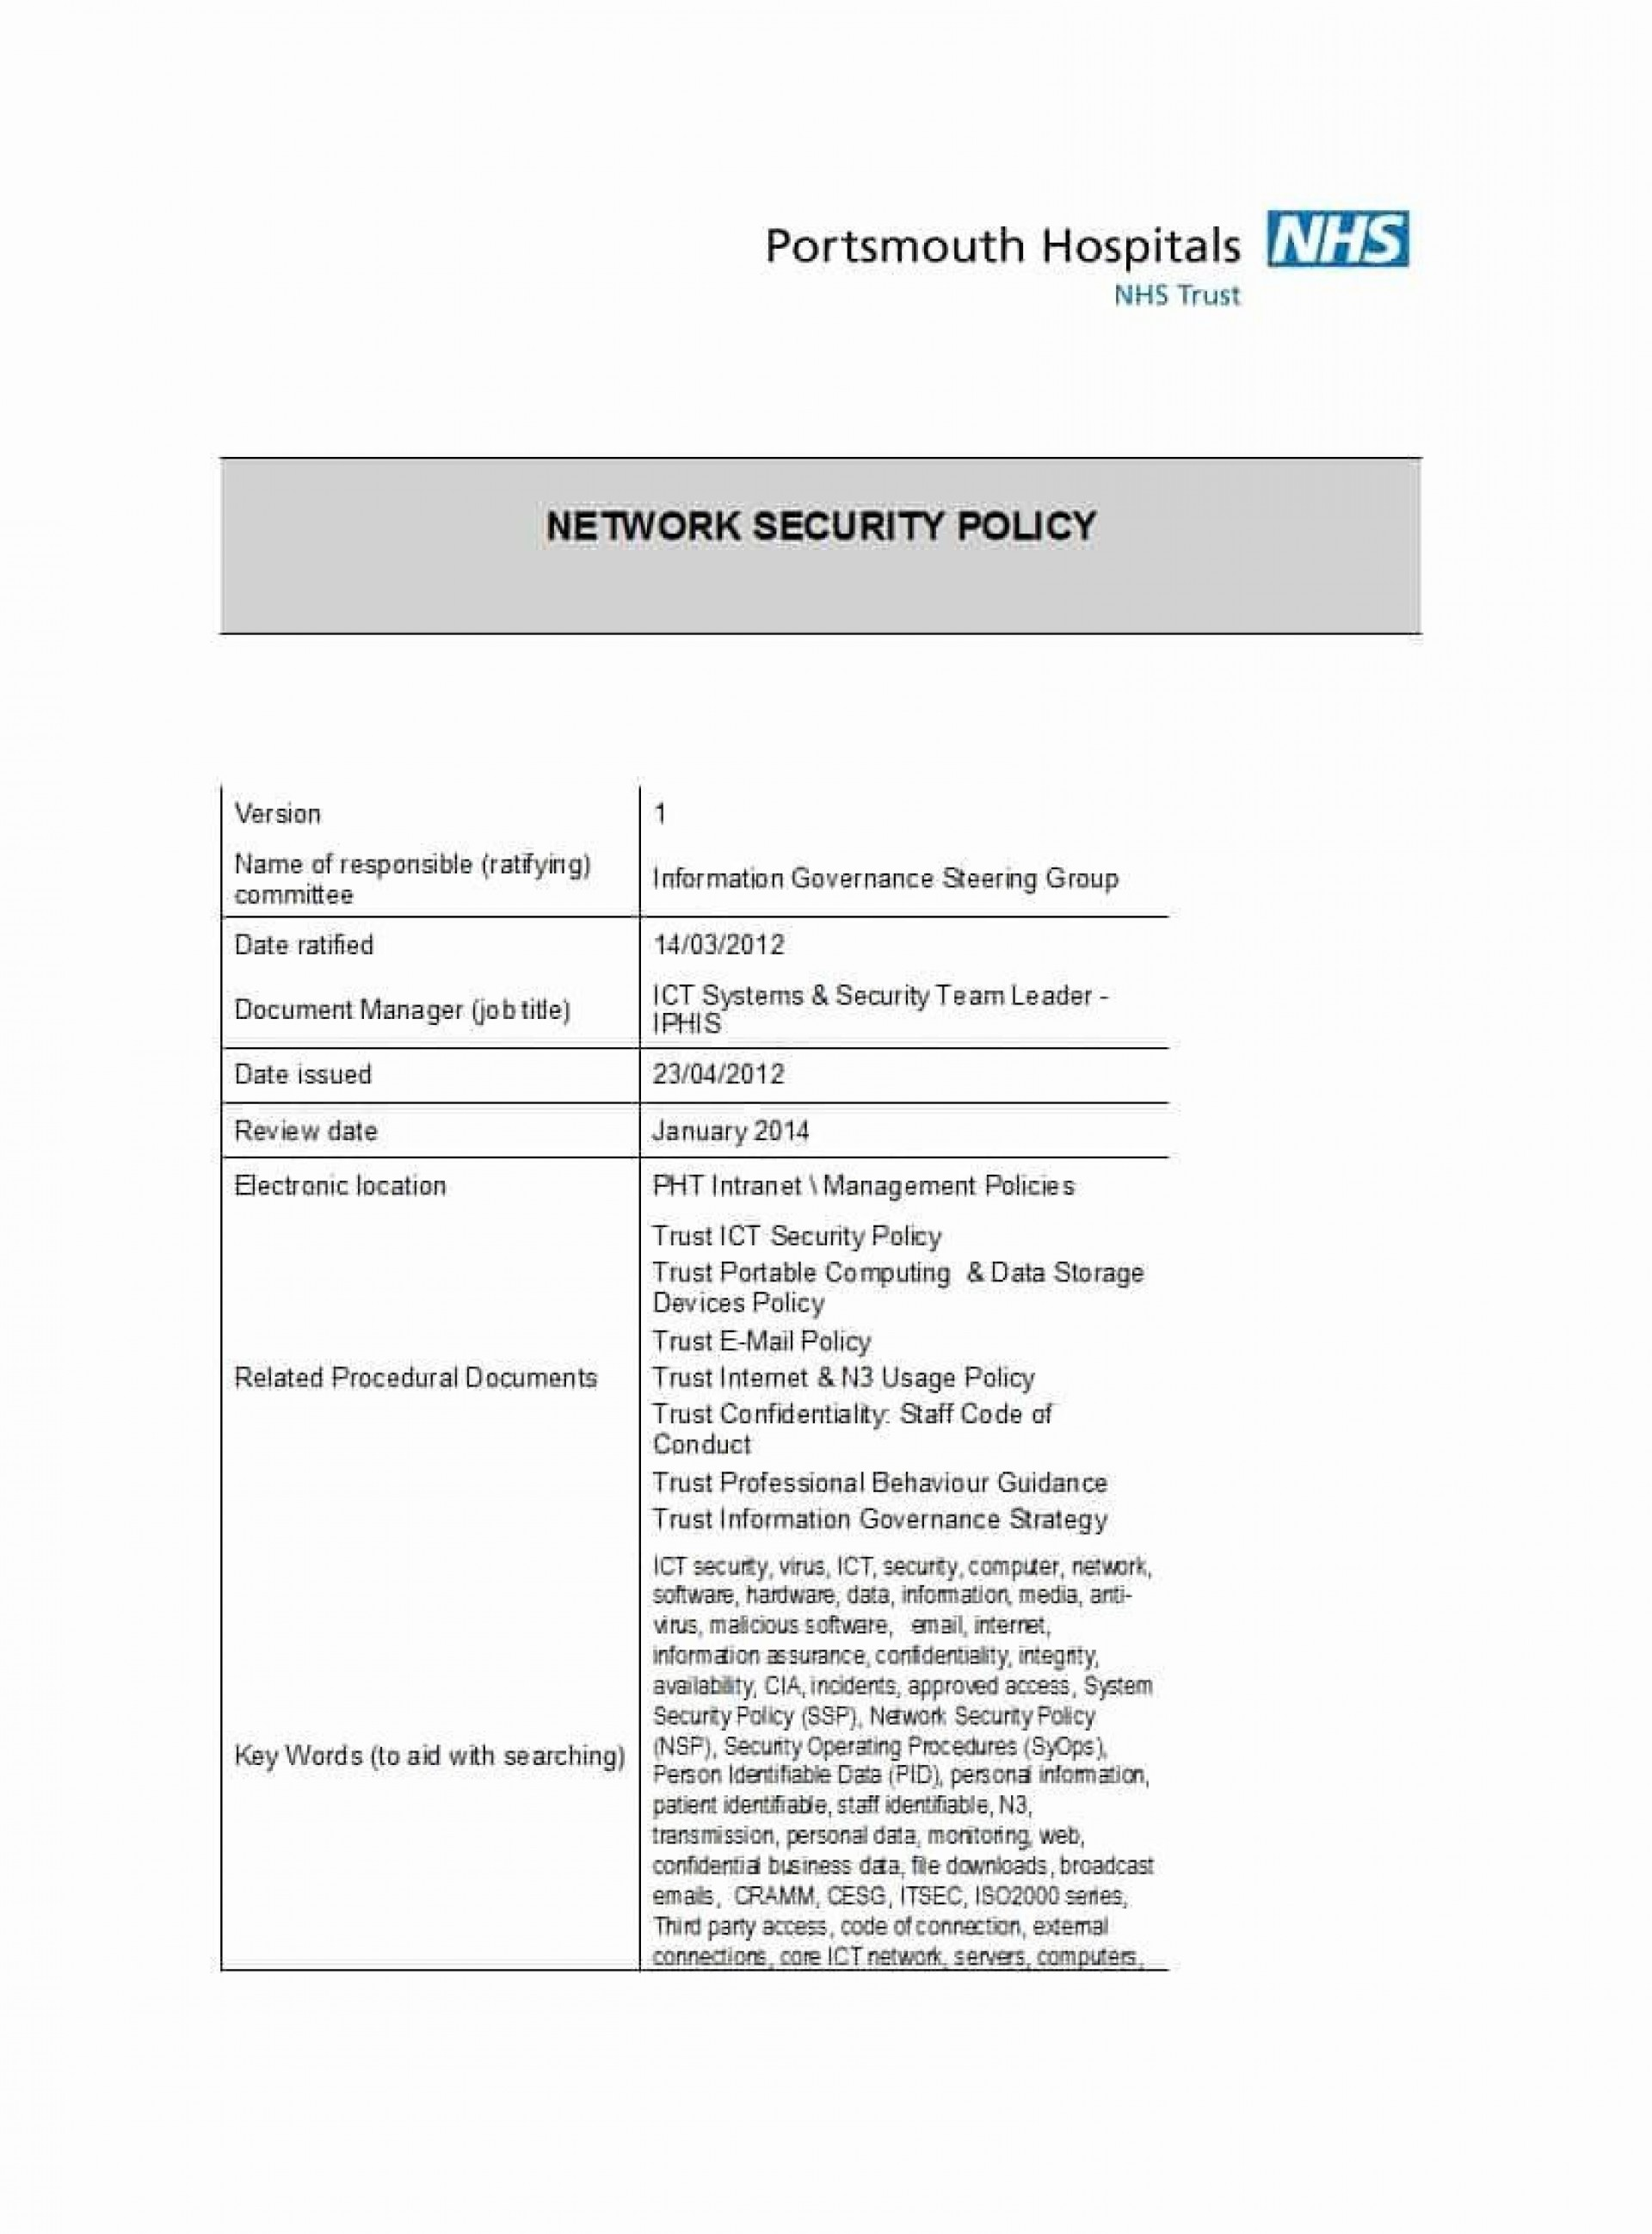 002 Formidable Information Security Policy Template High Resolution  It Sample Pdf Uk Gdpr For Small Busines Australia1920